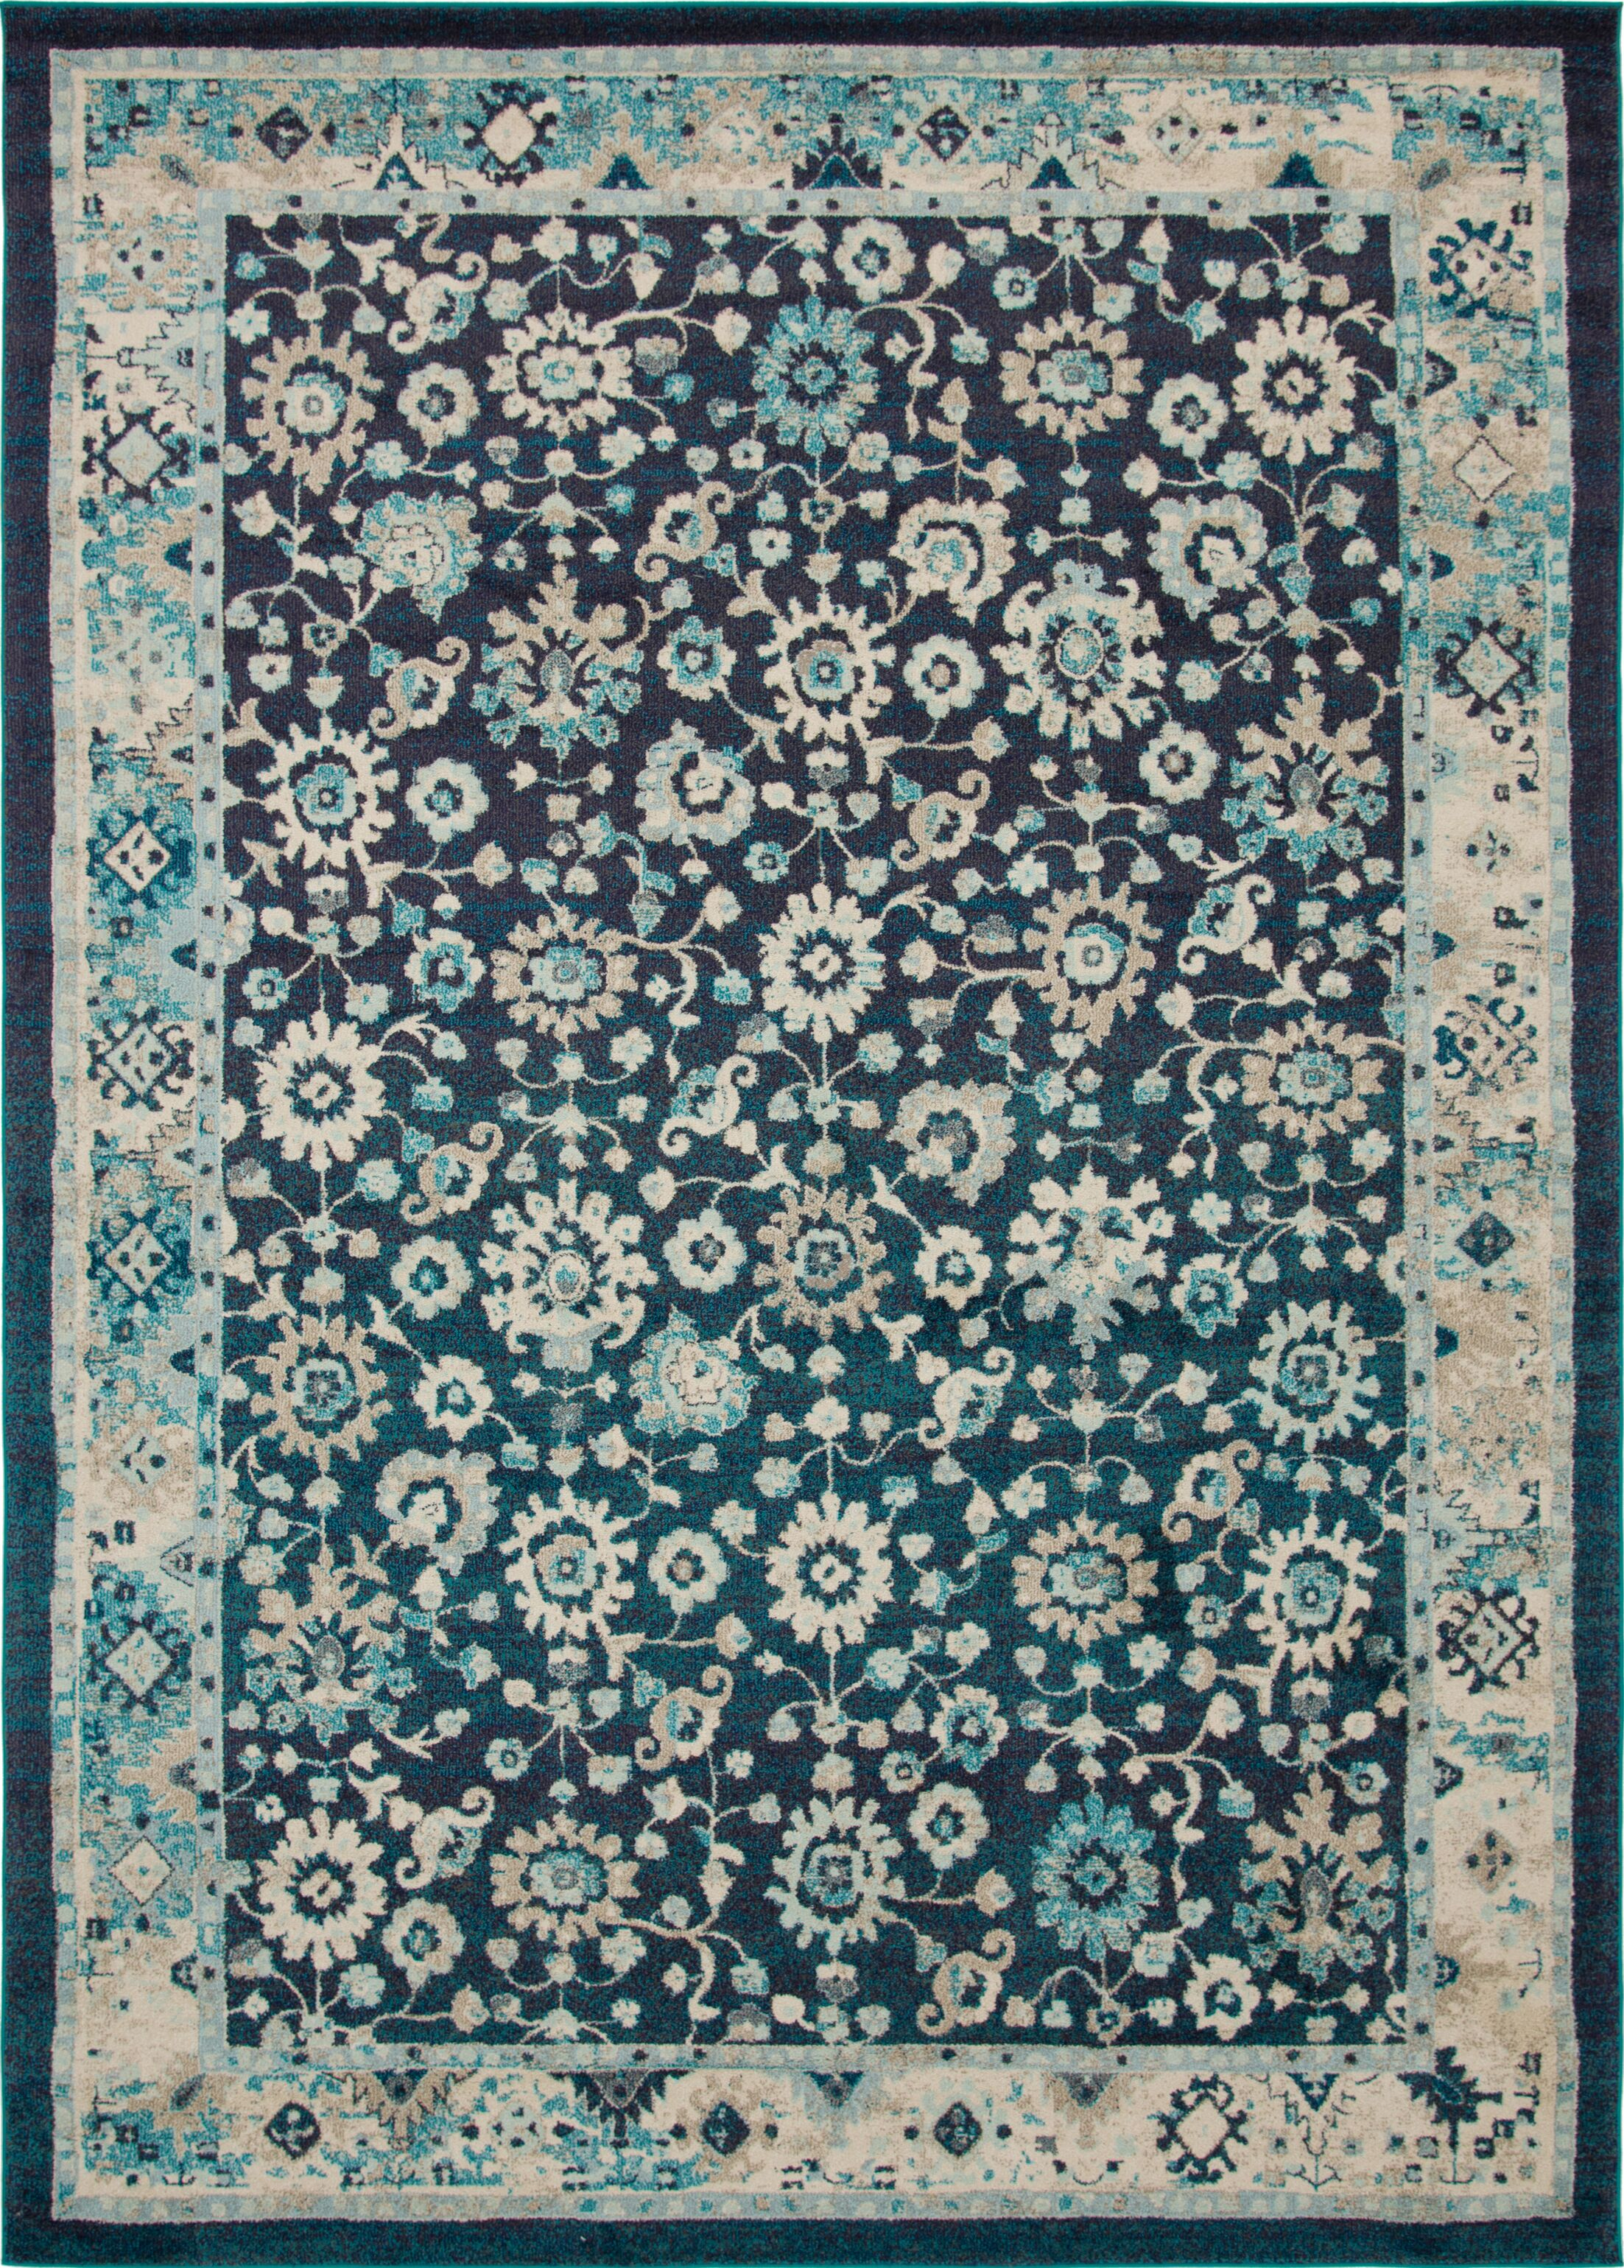 Ernst Navy Blue/Black Area Rug Rug Size: Rectangle 9' x 12'